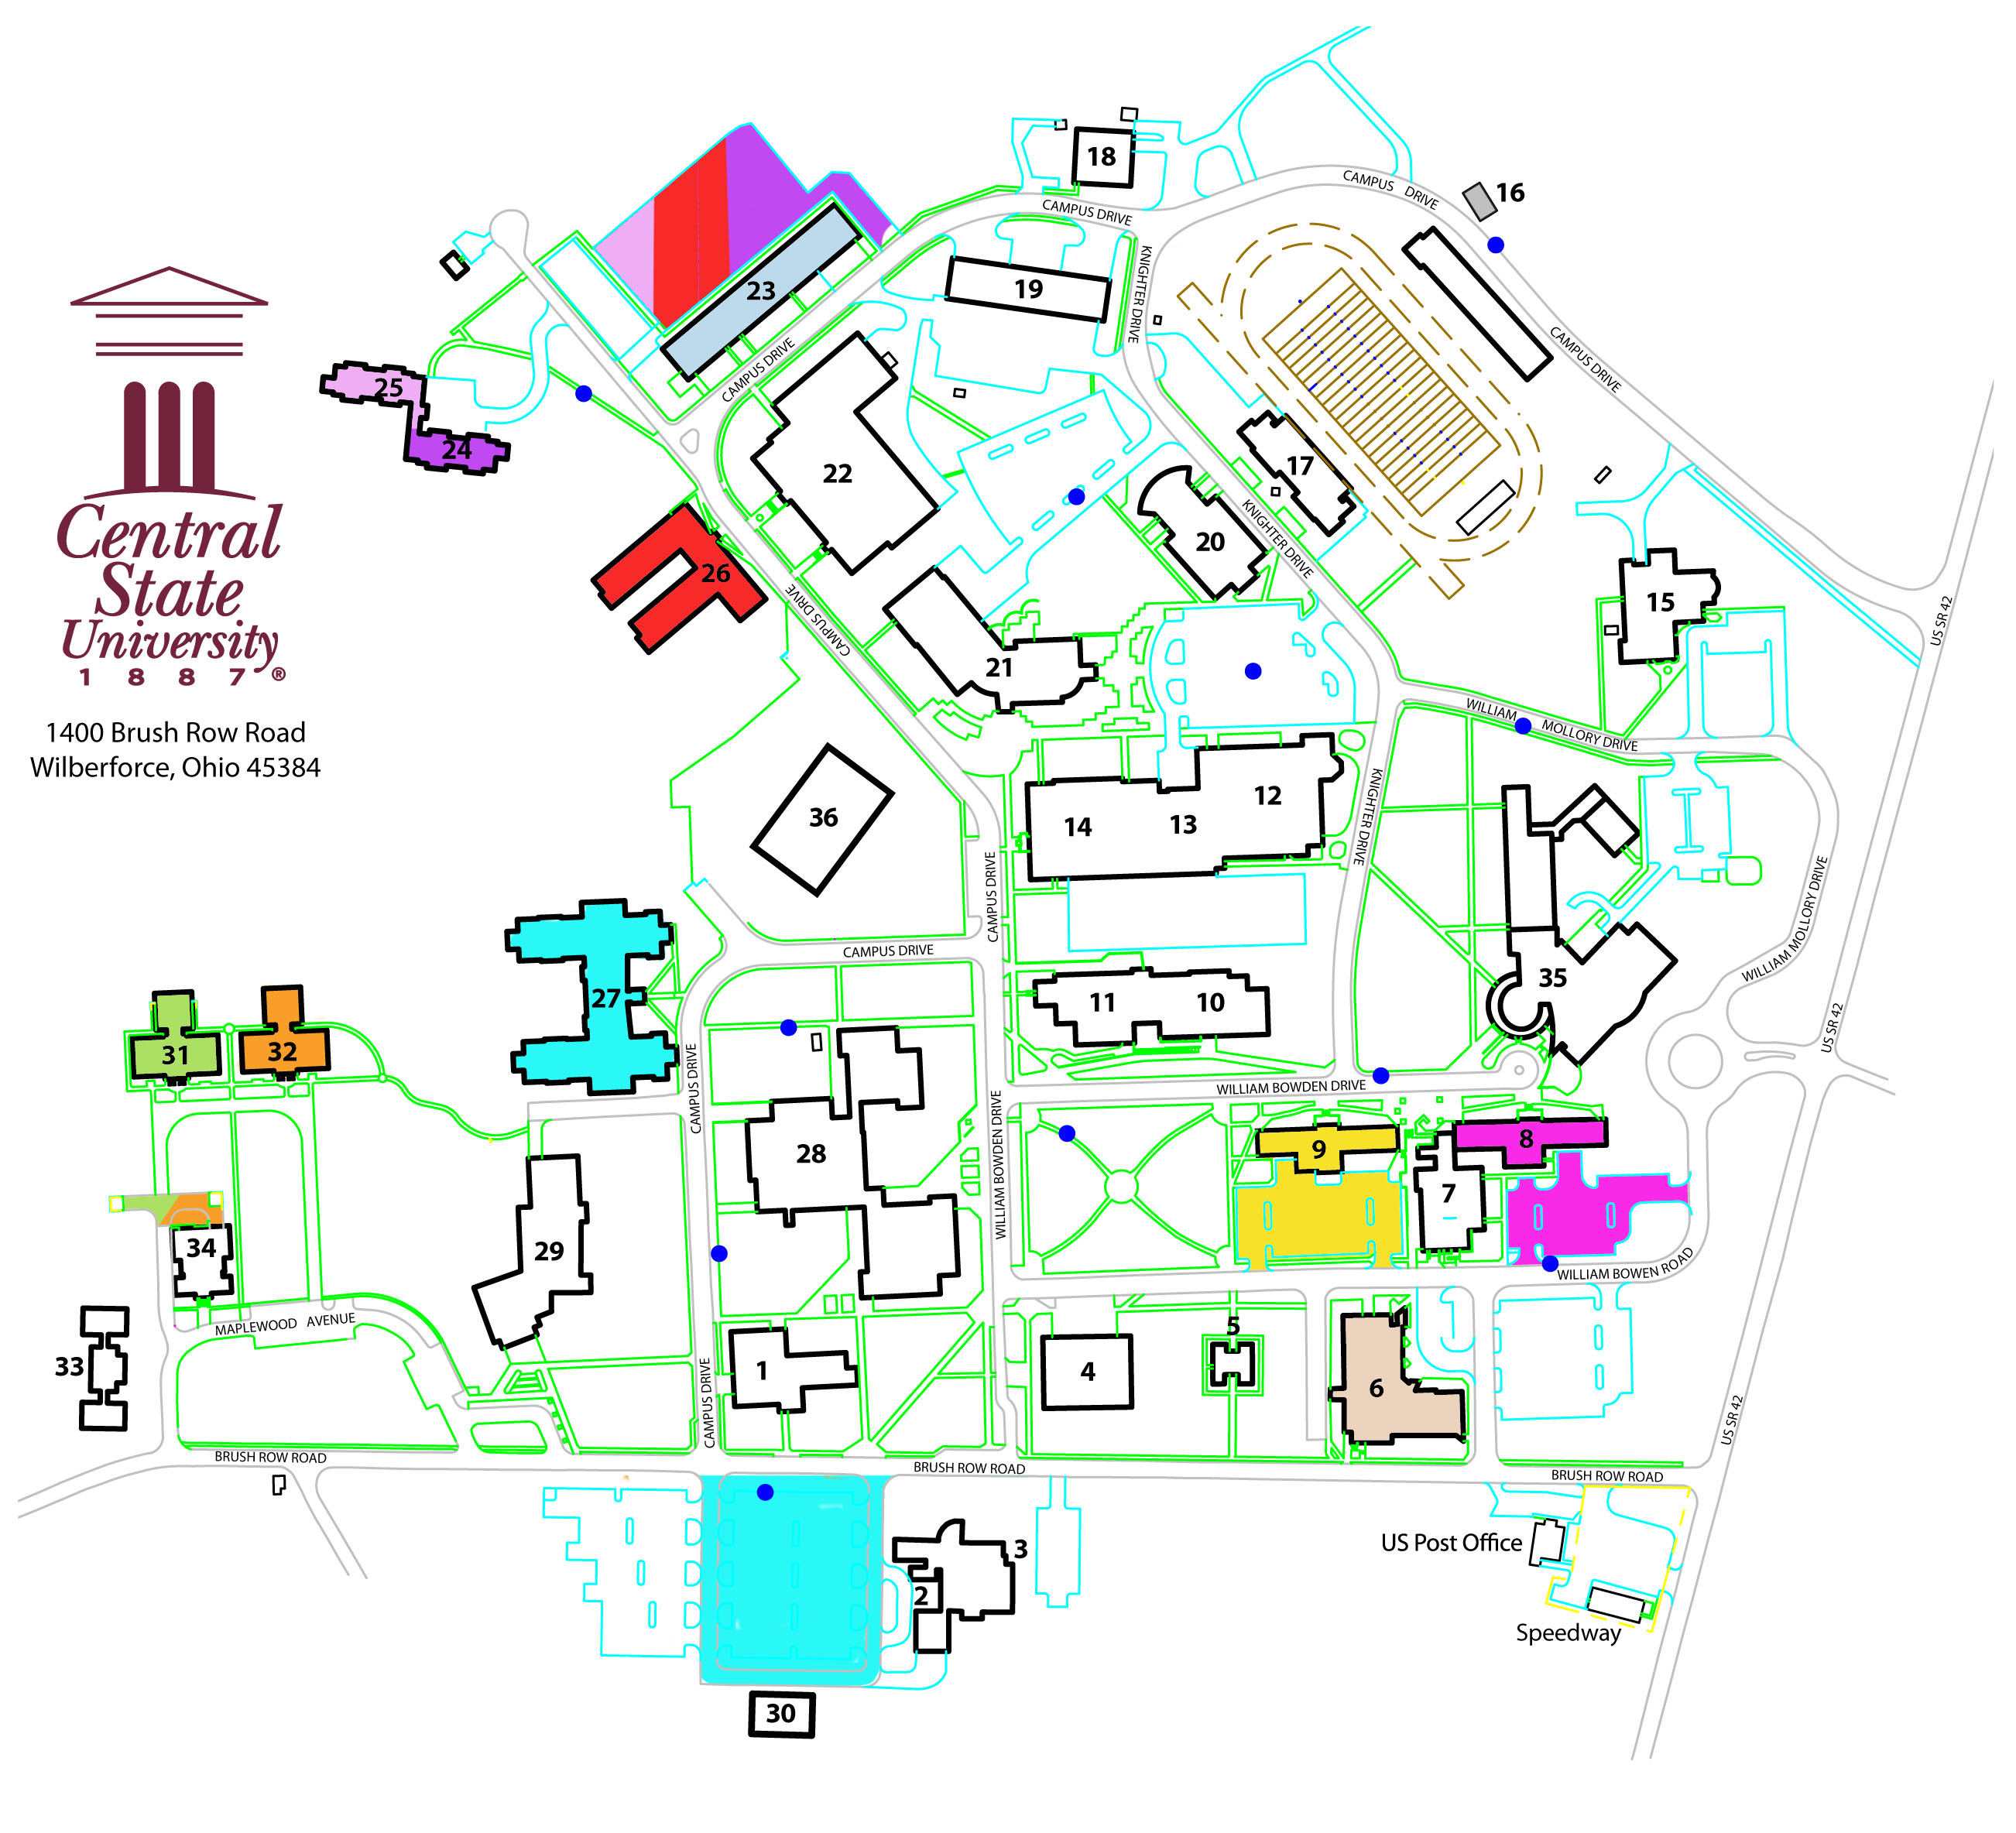 Student Life Central State University